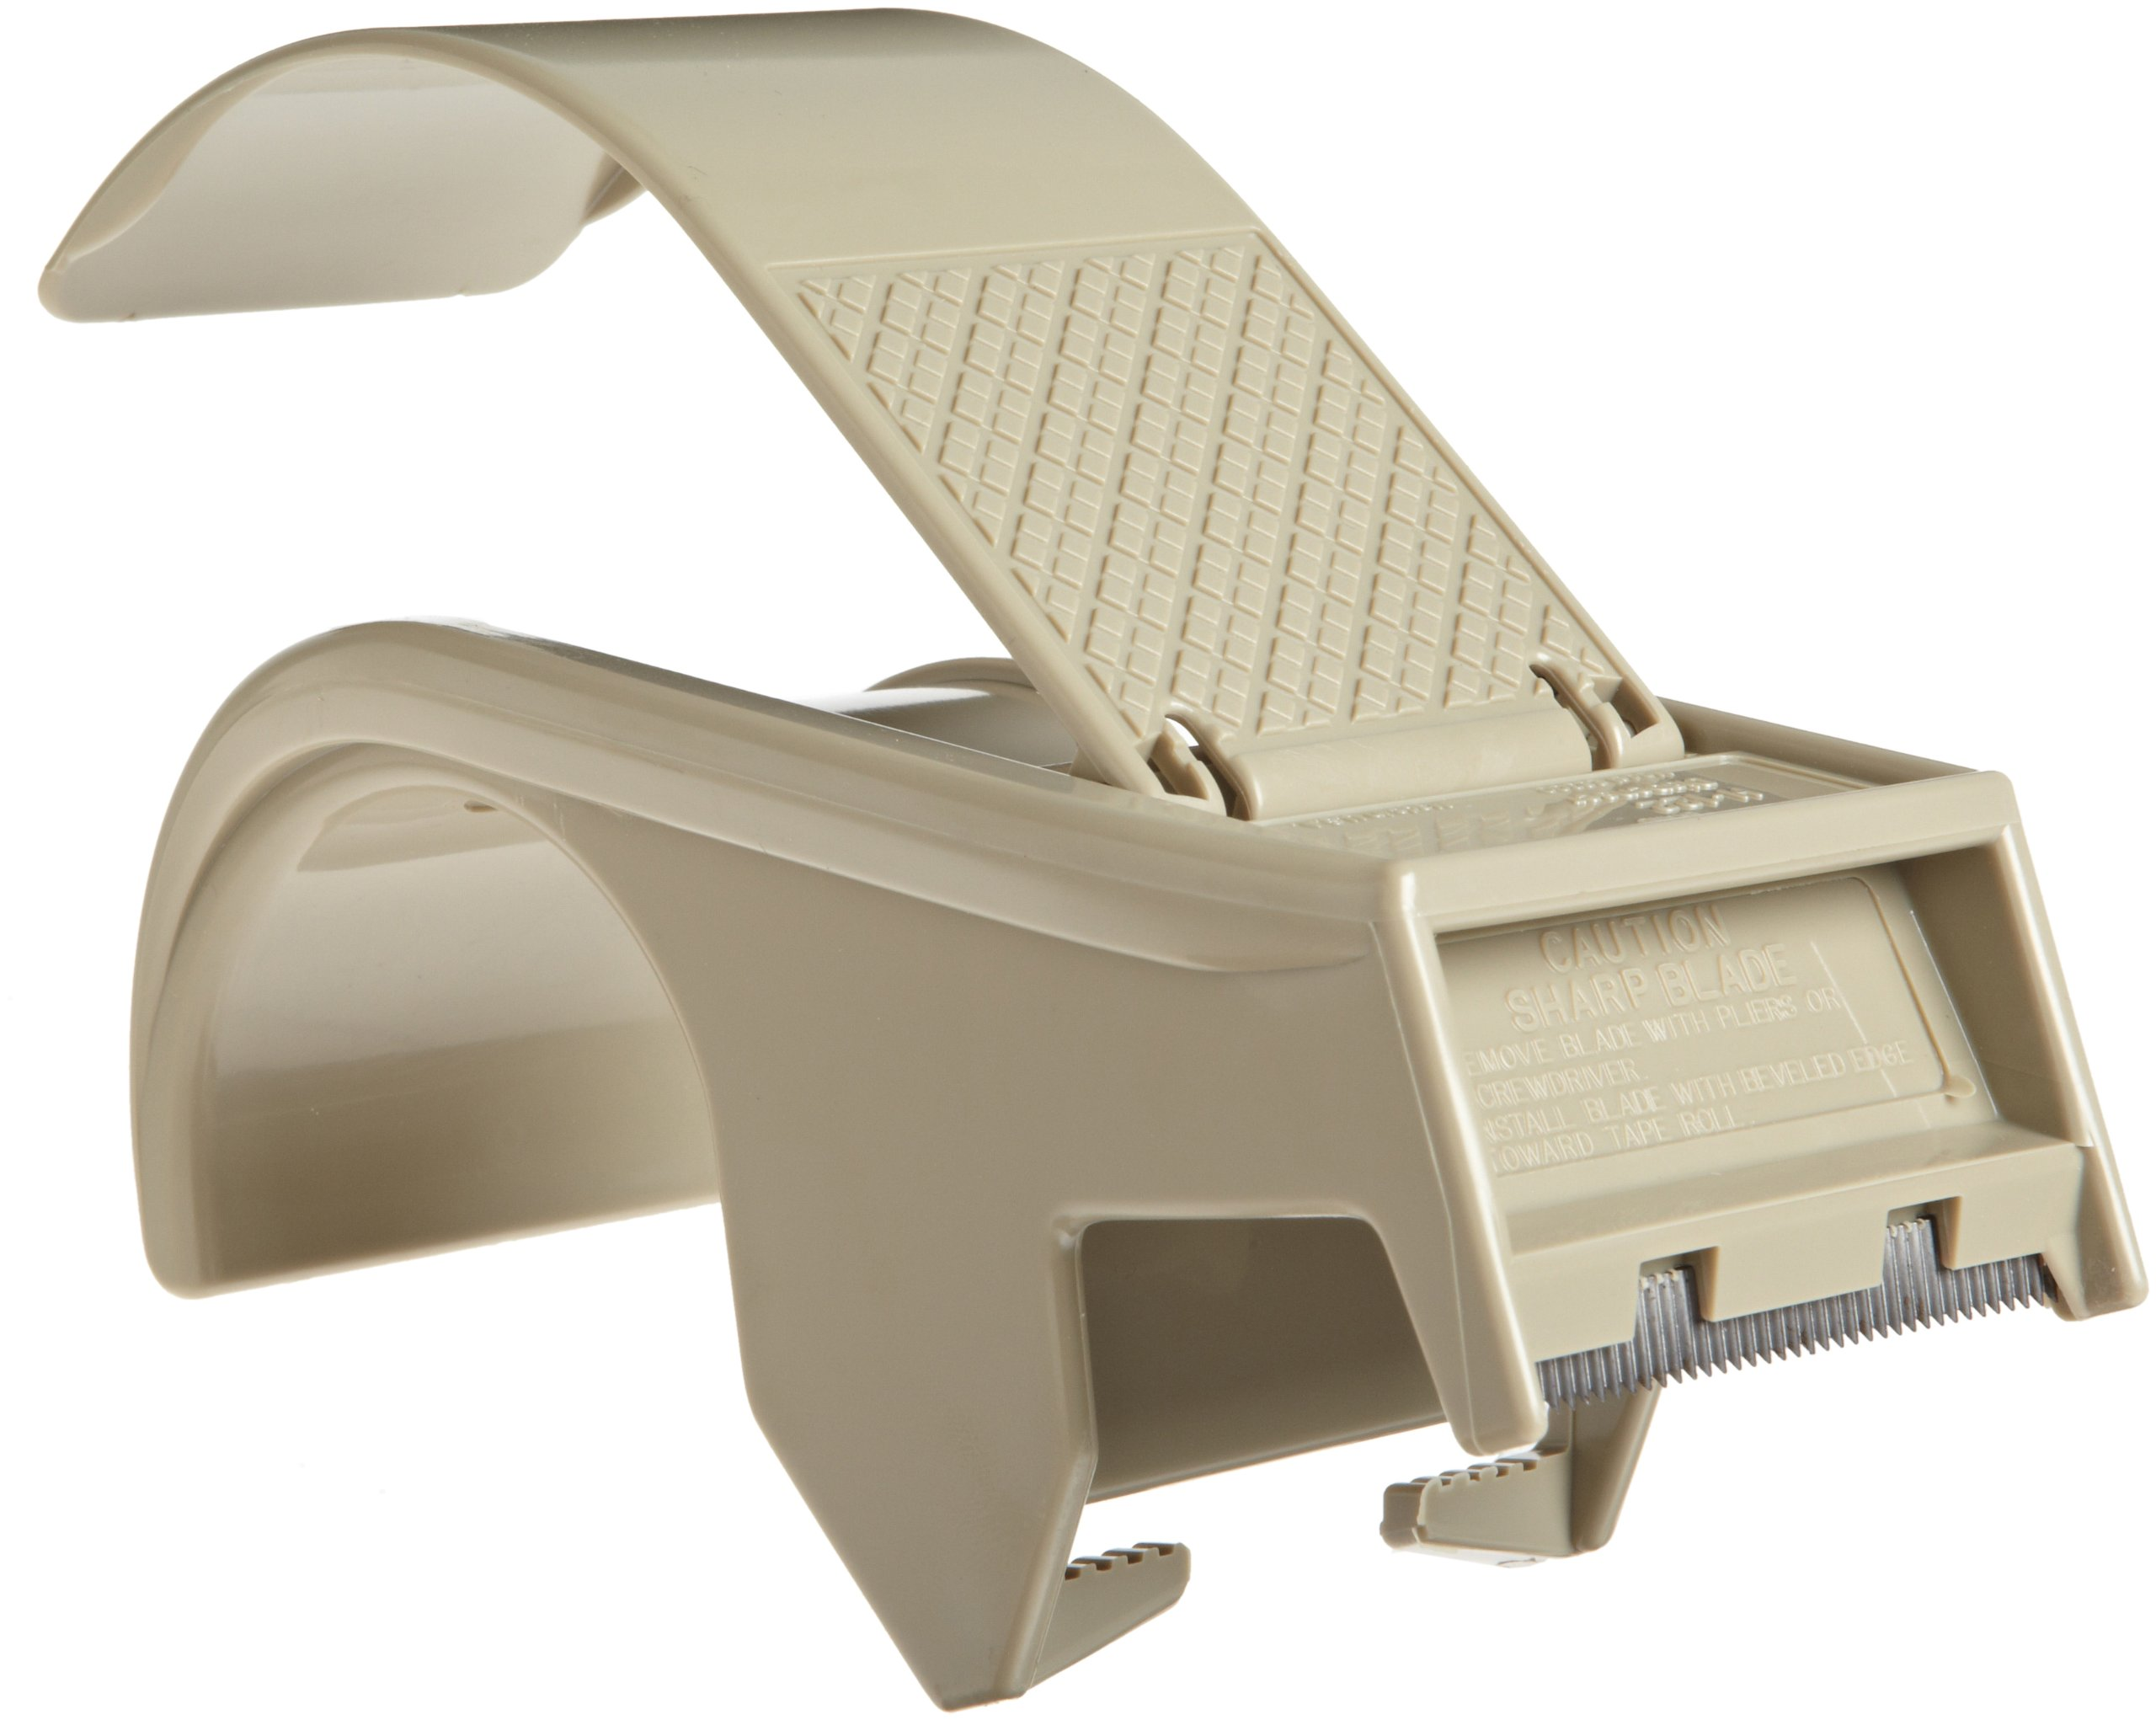 Scotch Box Sealing Tape Dispenser H122, 2 in product image